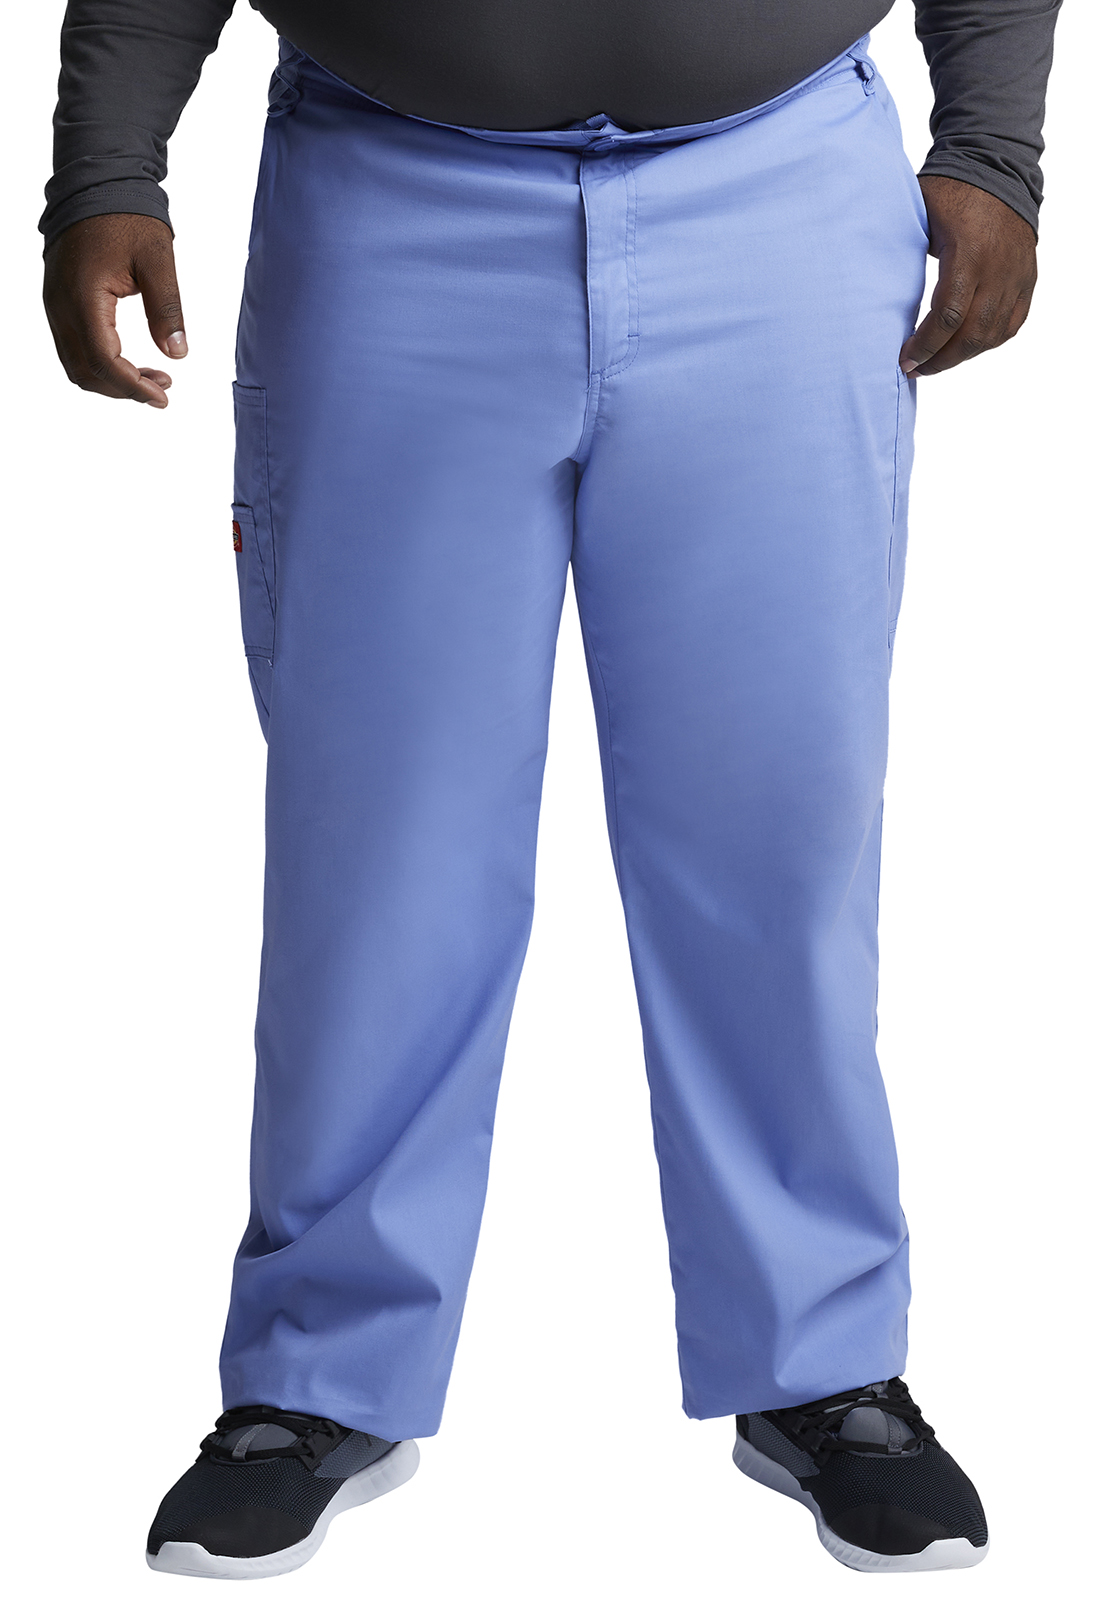 09ac2e0e5c9 EDS Signature Men's Zip Fly Pull-On Pant in Ciel 81006-CIWZ from Tom ...